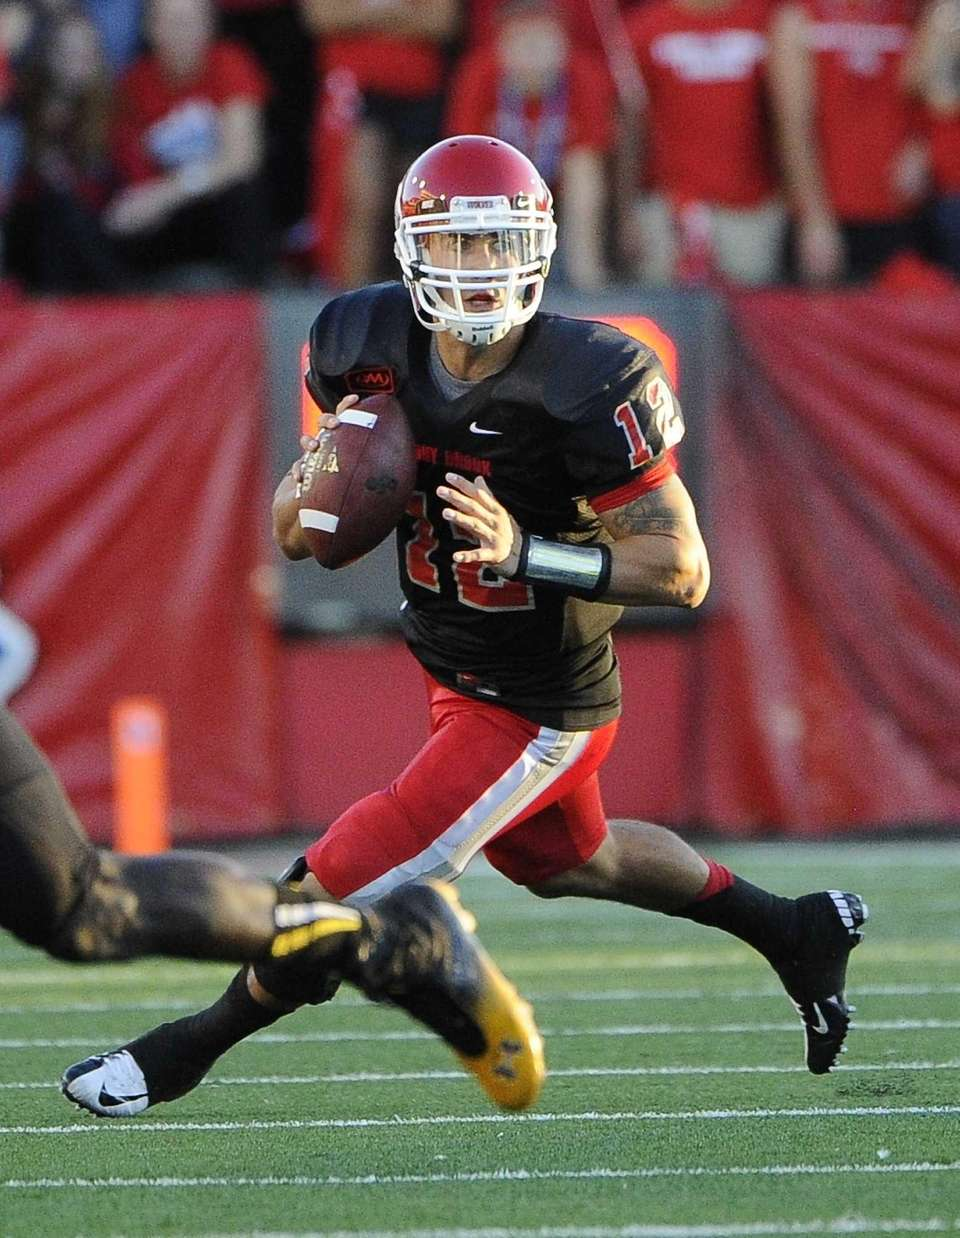 Stony Brook quarterback Lyle Negron looks to pass